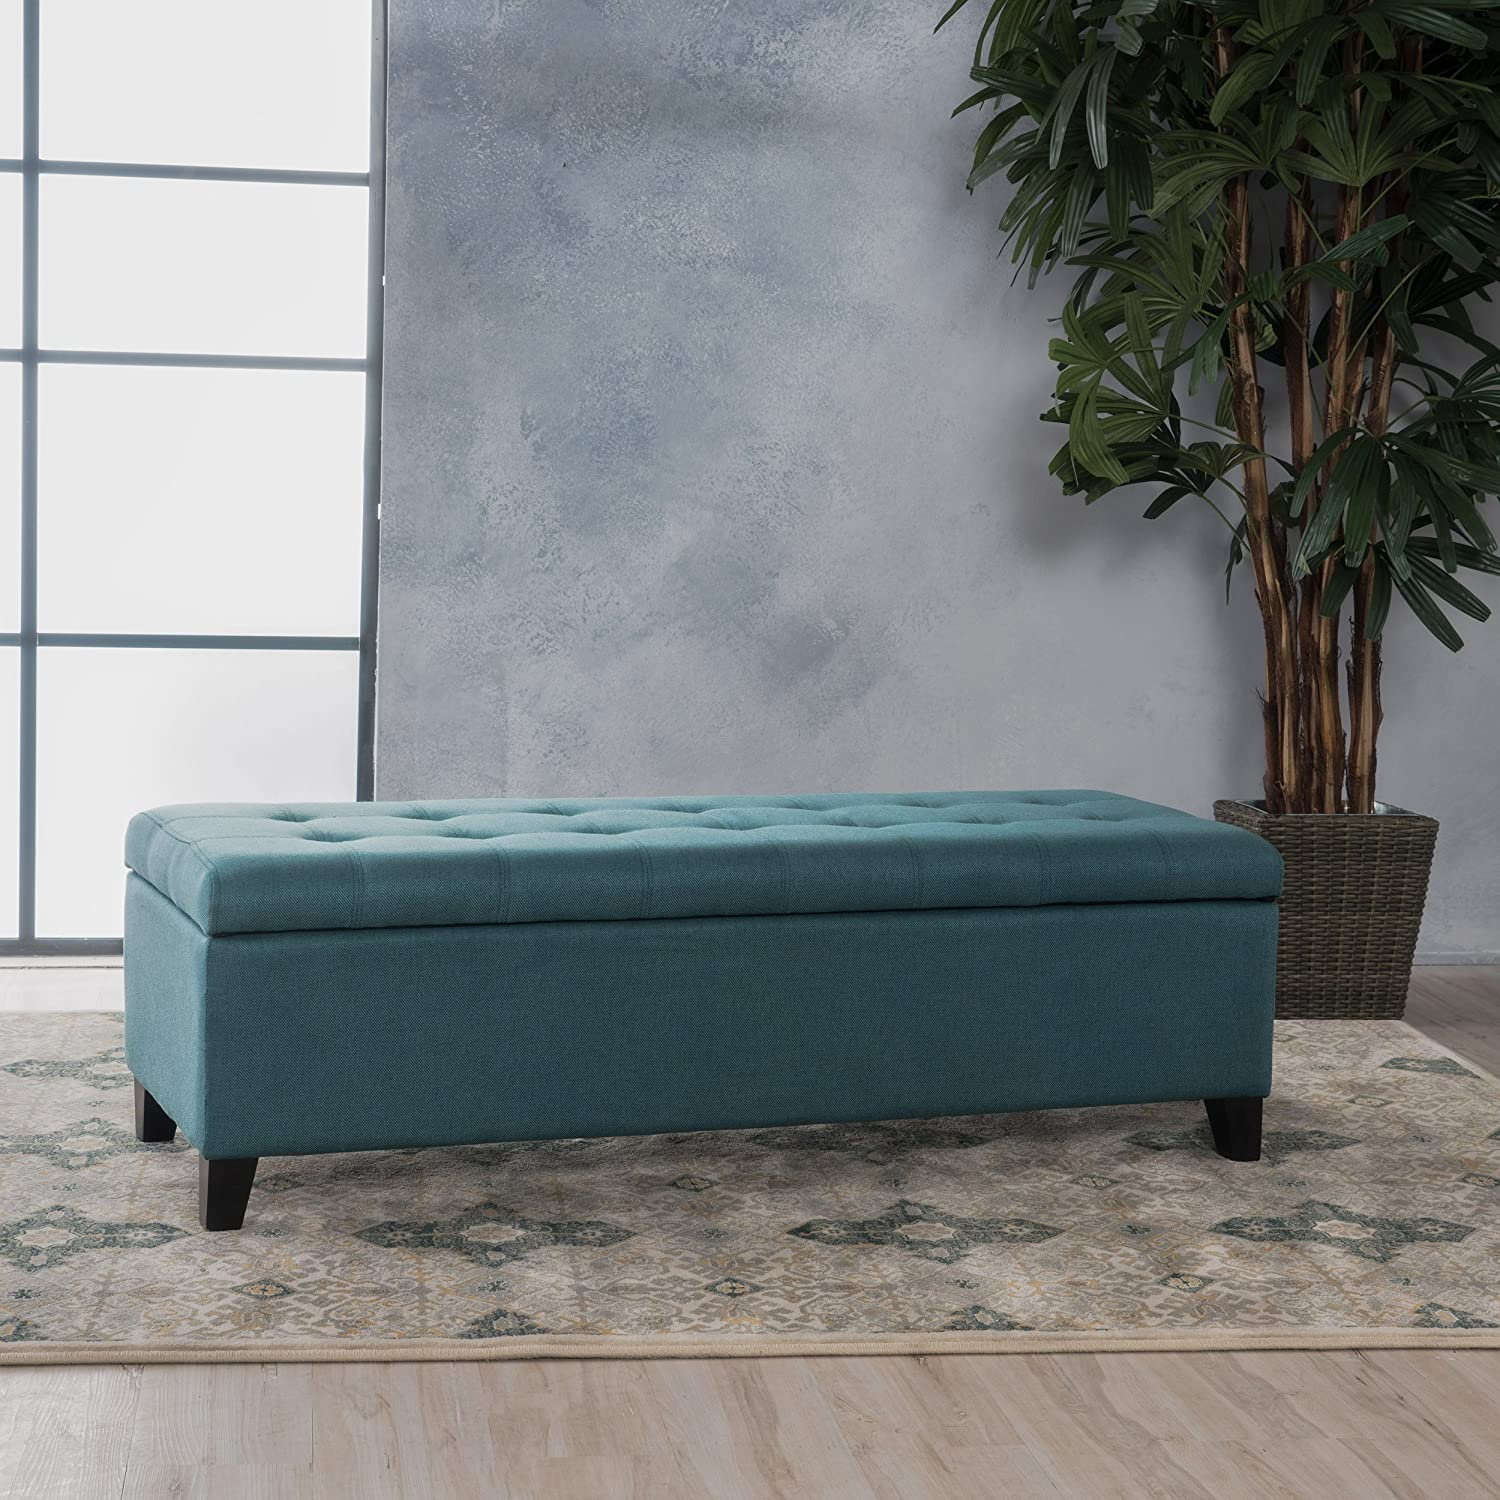 "Christopher Knight Home 299866 Living Sterling Dark Teal Fabric Storage Ottoman, Dimensions: 19.25""D x 50.75""W x 16.25""H Great Deal Furniture"